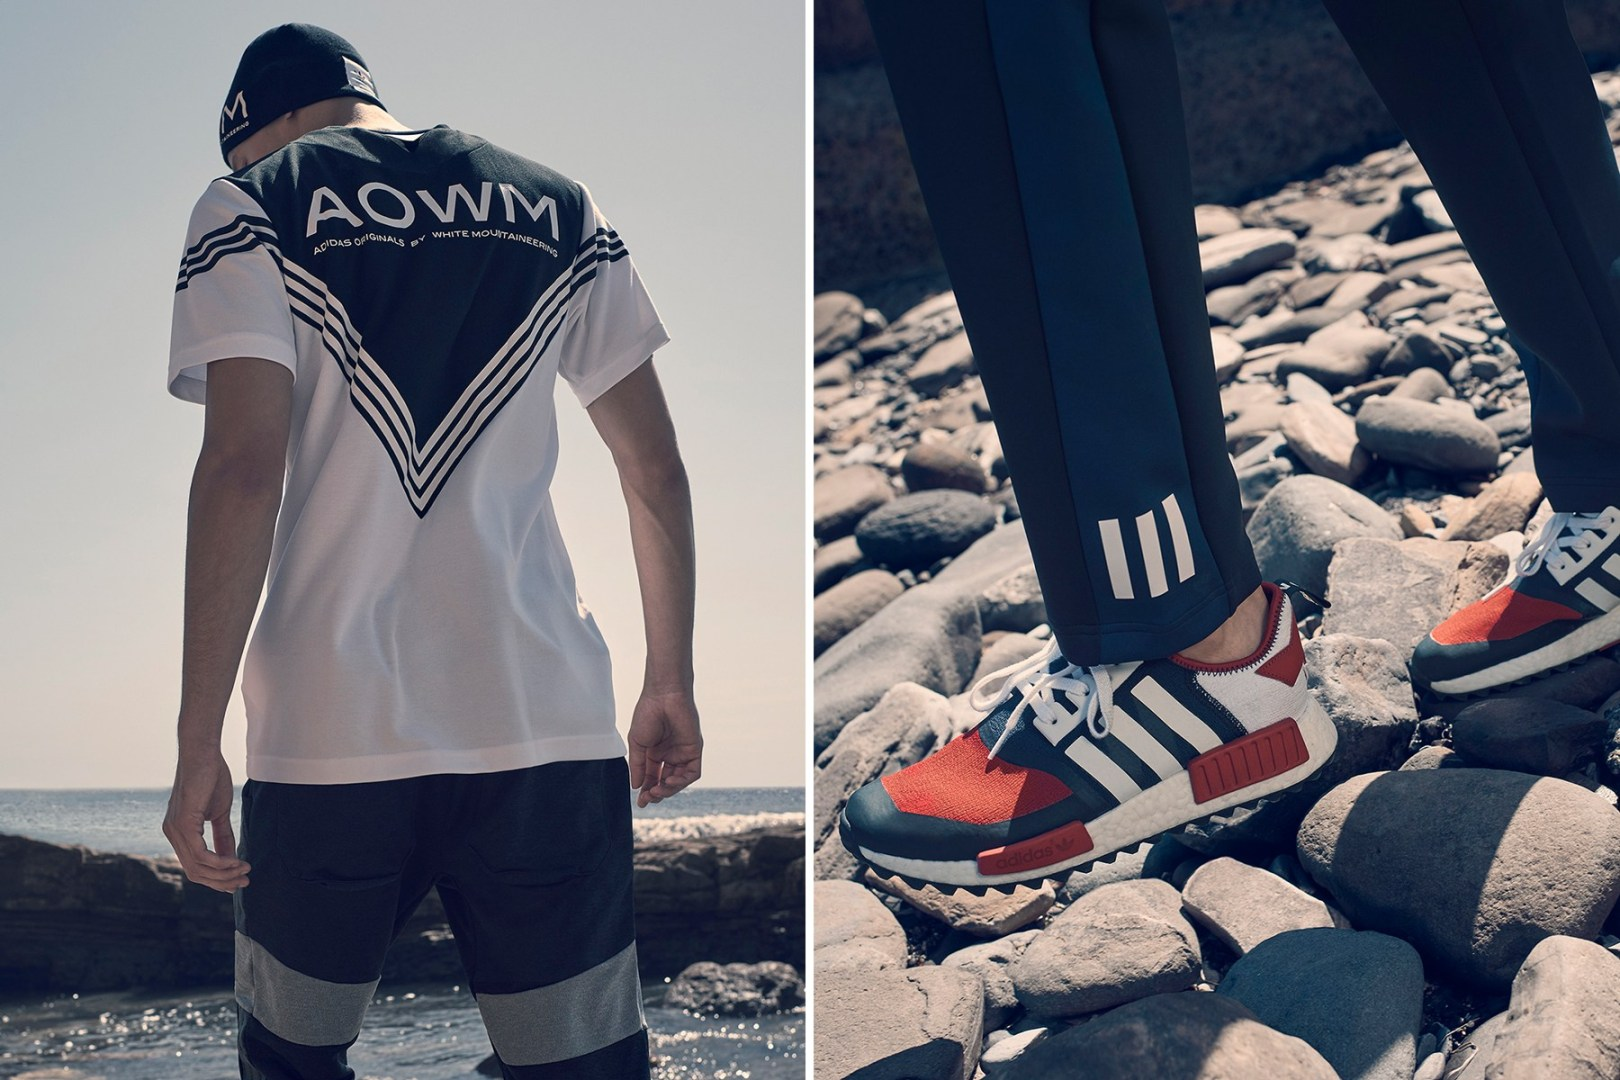 super popular f0380 bfaf4 adidas Originals x White Mountaineering Drop SS 17 Lookbook